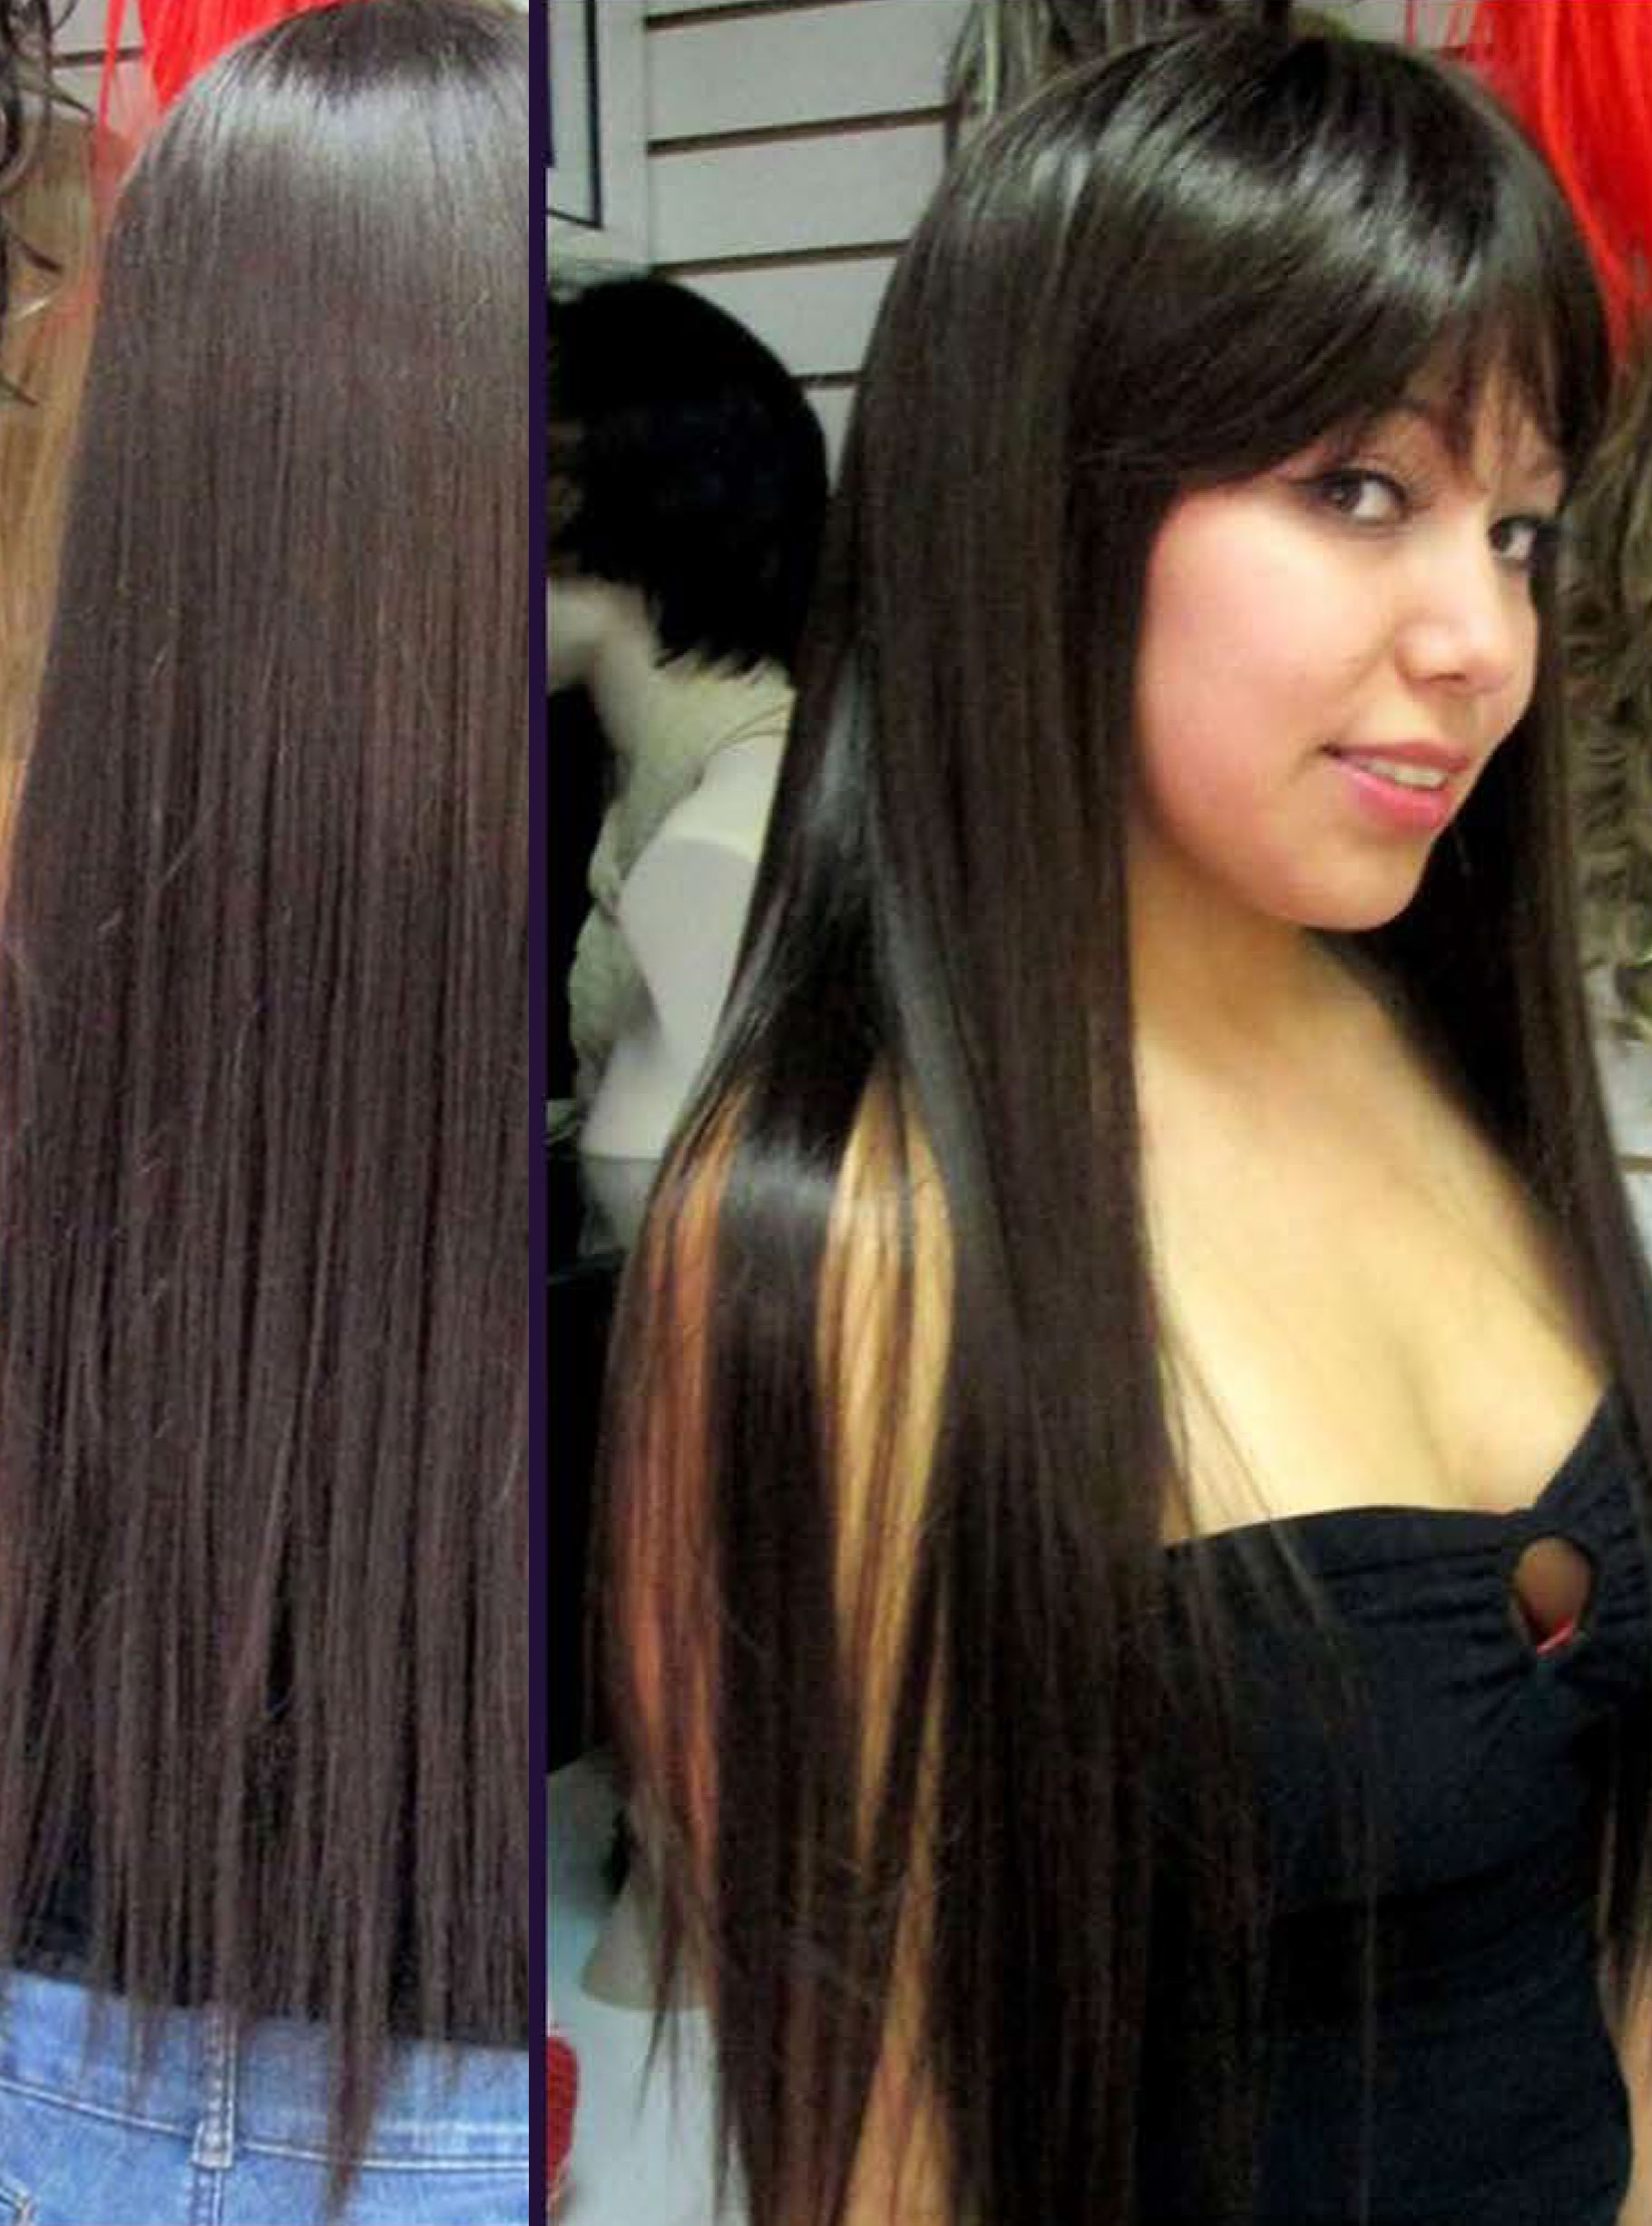 Cabello 100% natural 70cm de largo